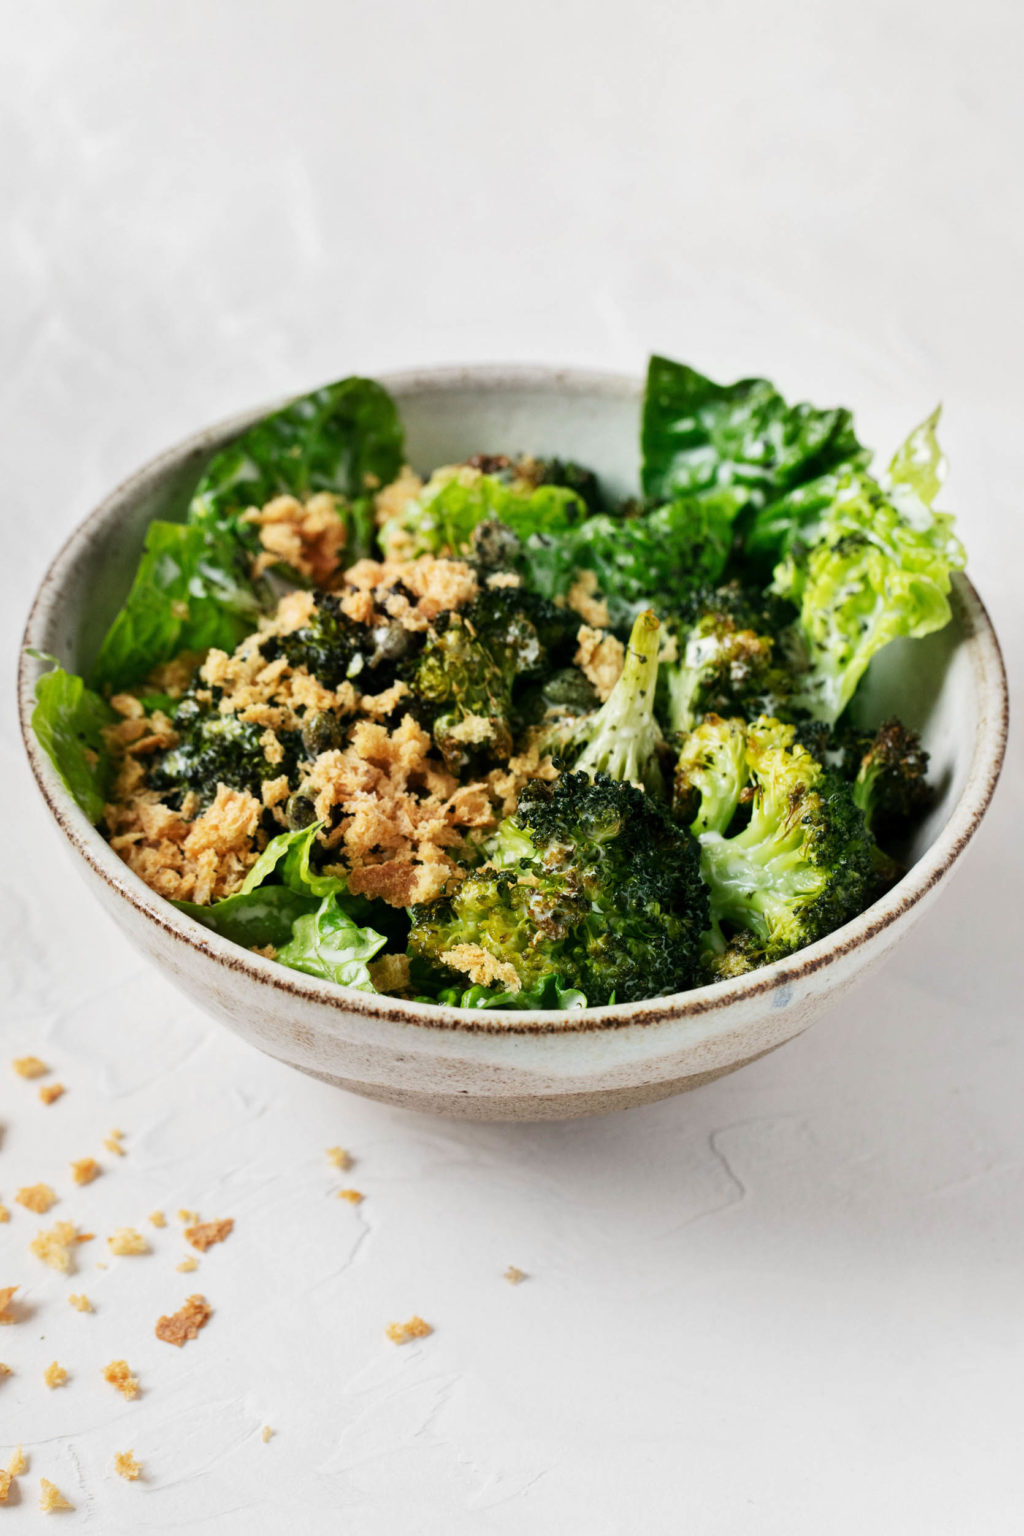 An angled shot of a vegan crispy broccoli Caesar salad, with fresh bread crumbs scattered over the marble surface.